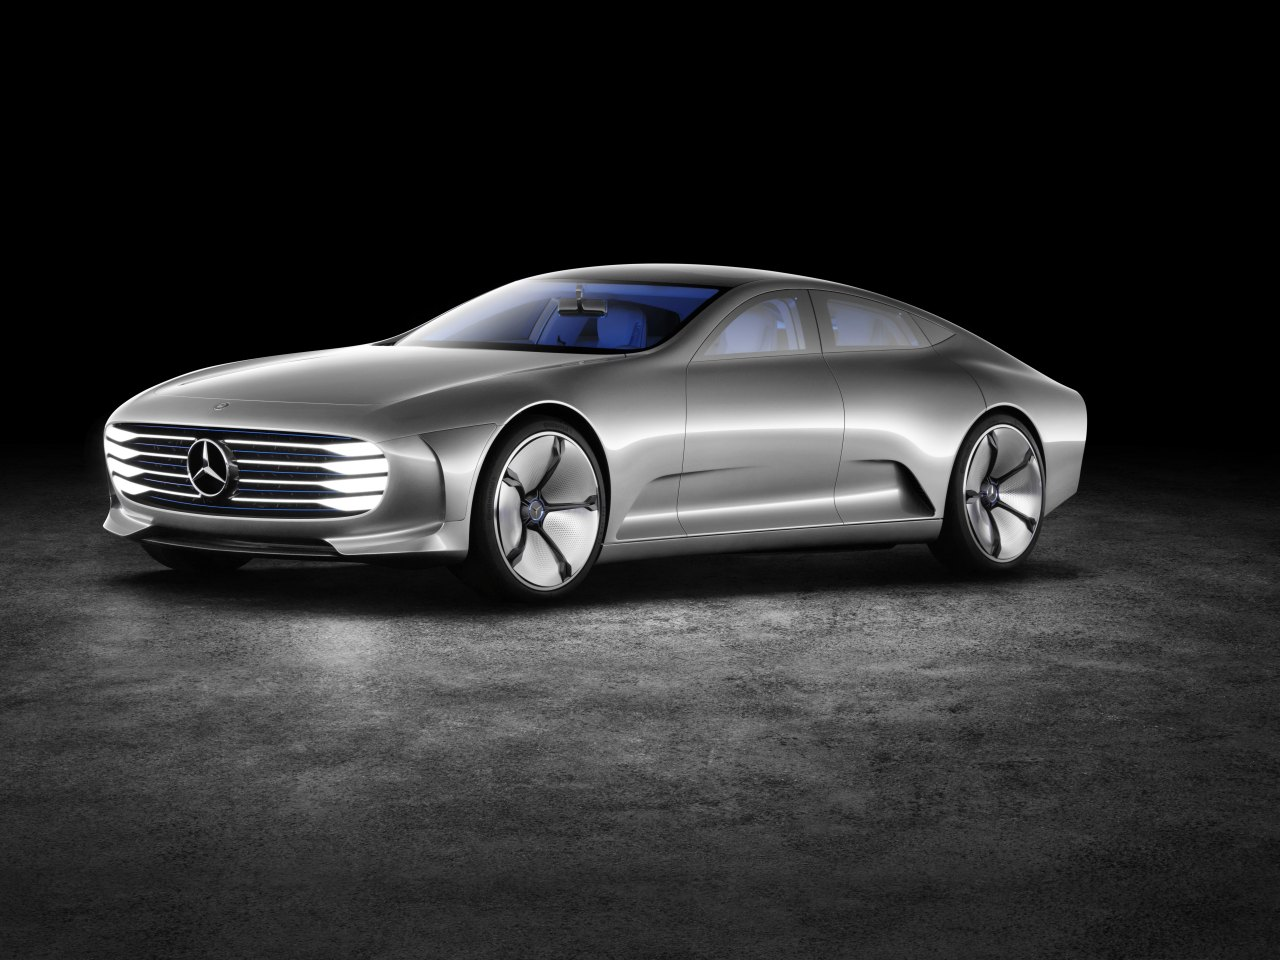 Mercedes is preparing a new platform for their future electric cars